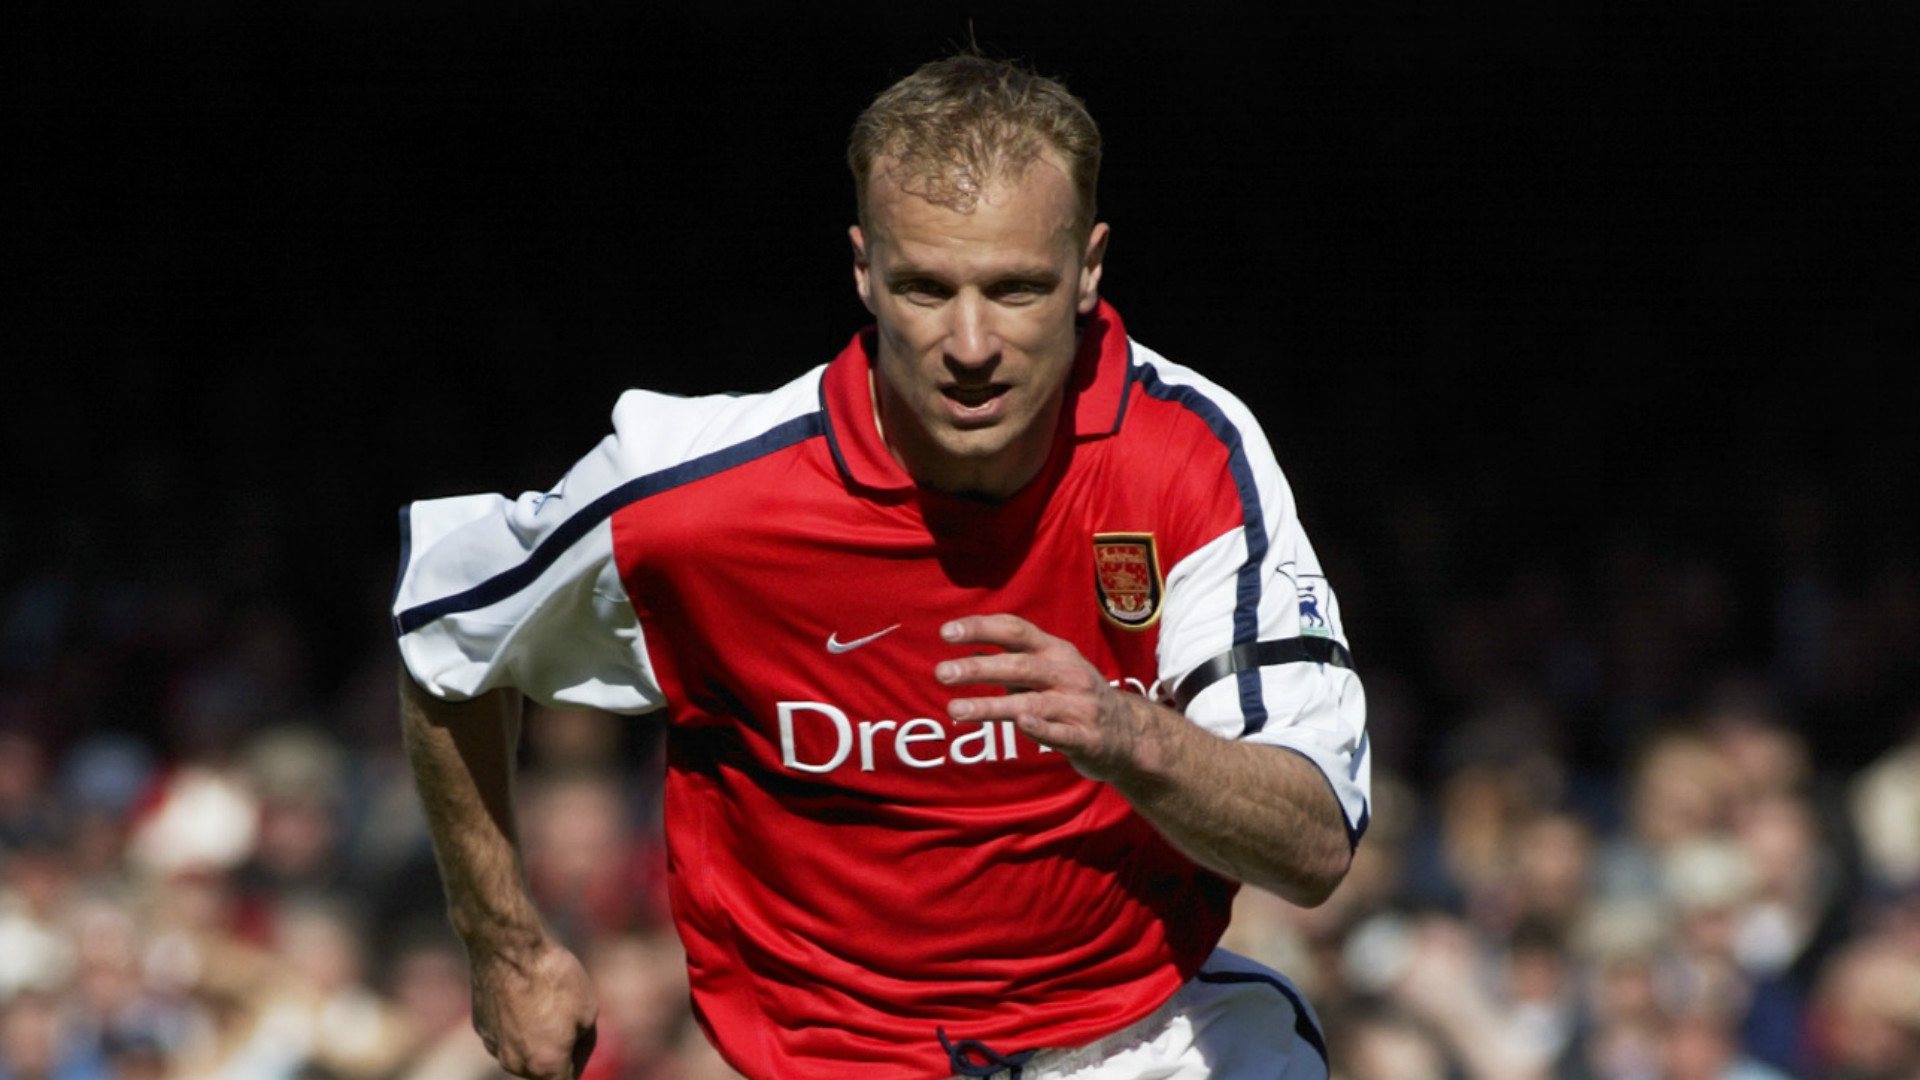 Bergkamp opens door to Arsenal return as Gunners legend waits on offers